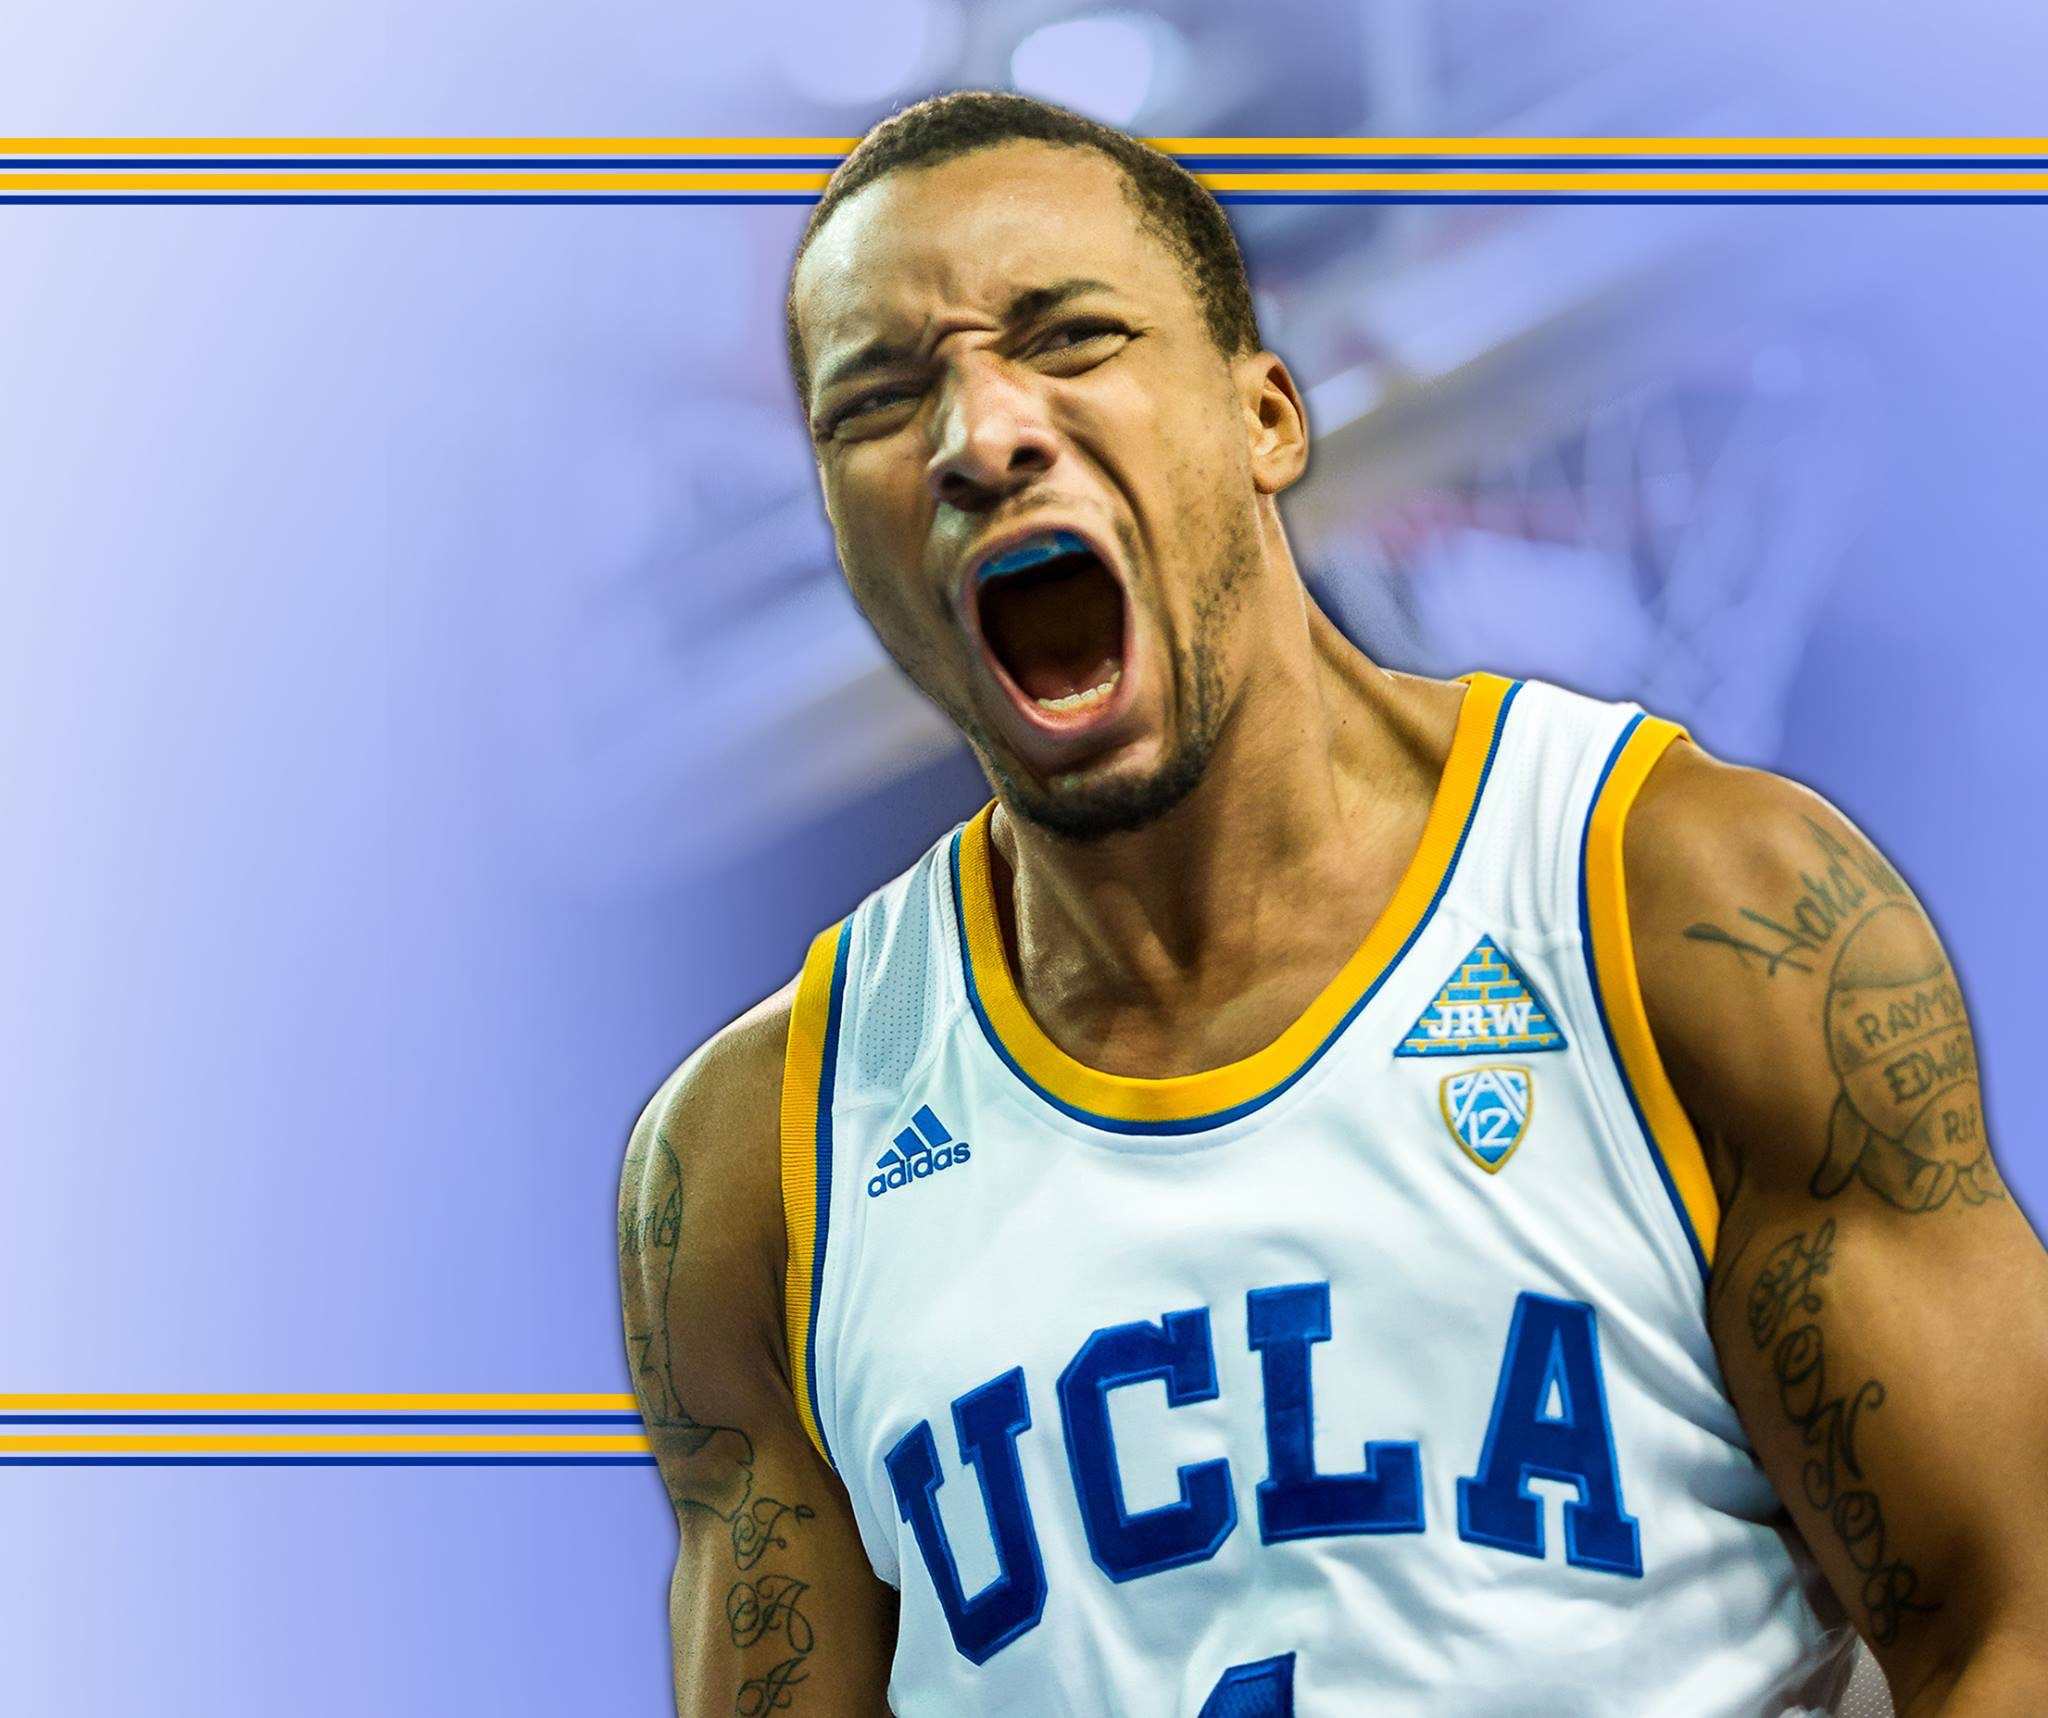 Powell fought through a hip injury to sink the winning points for UCLA.